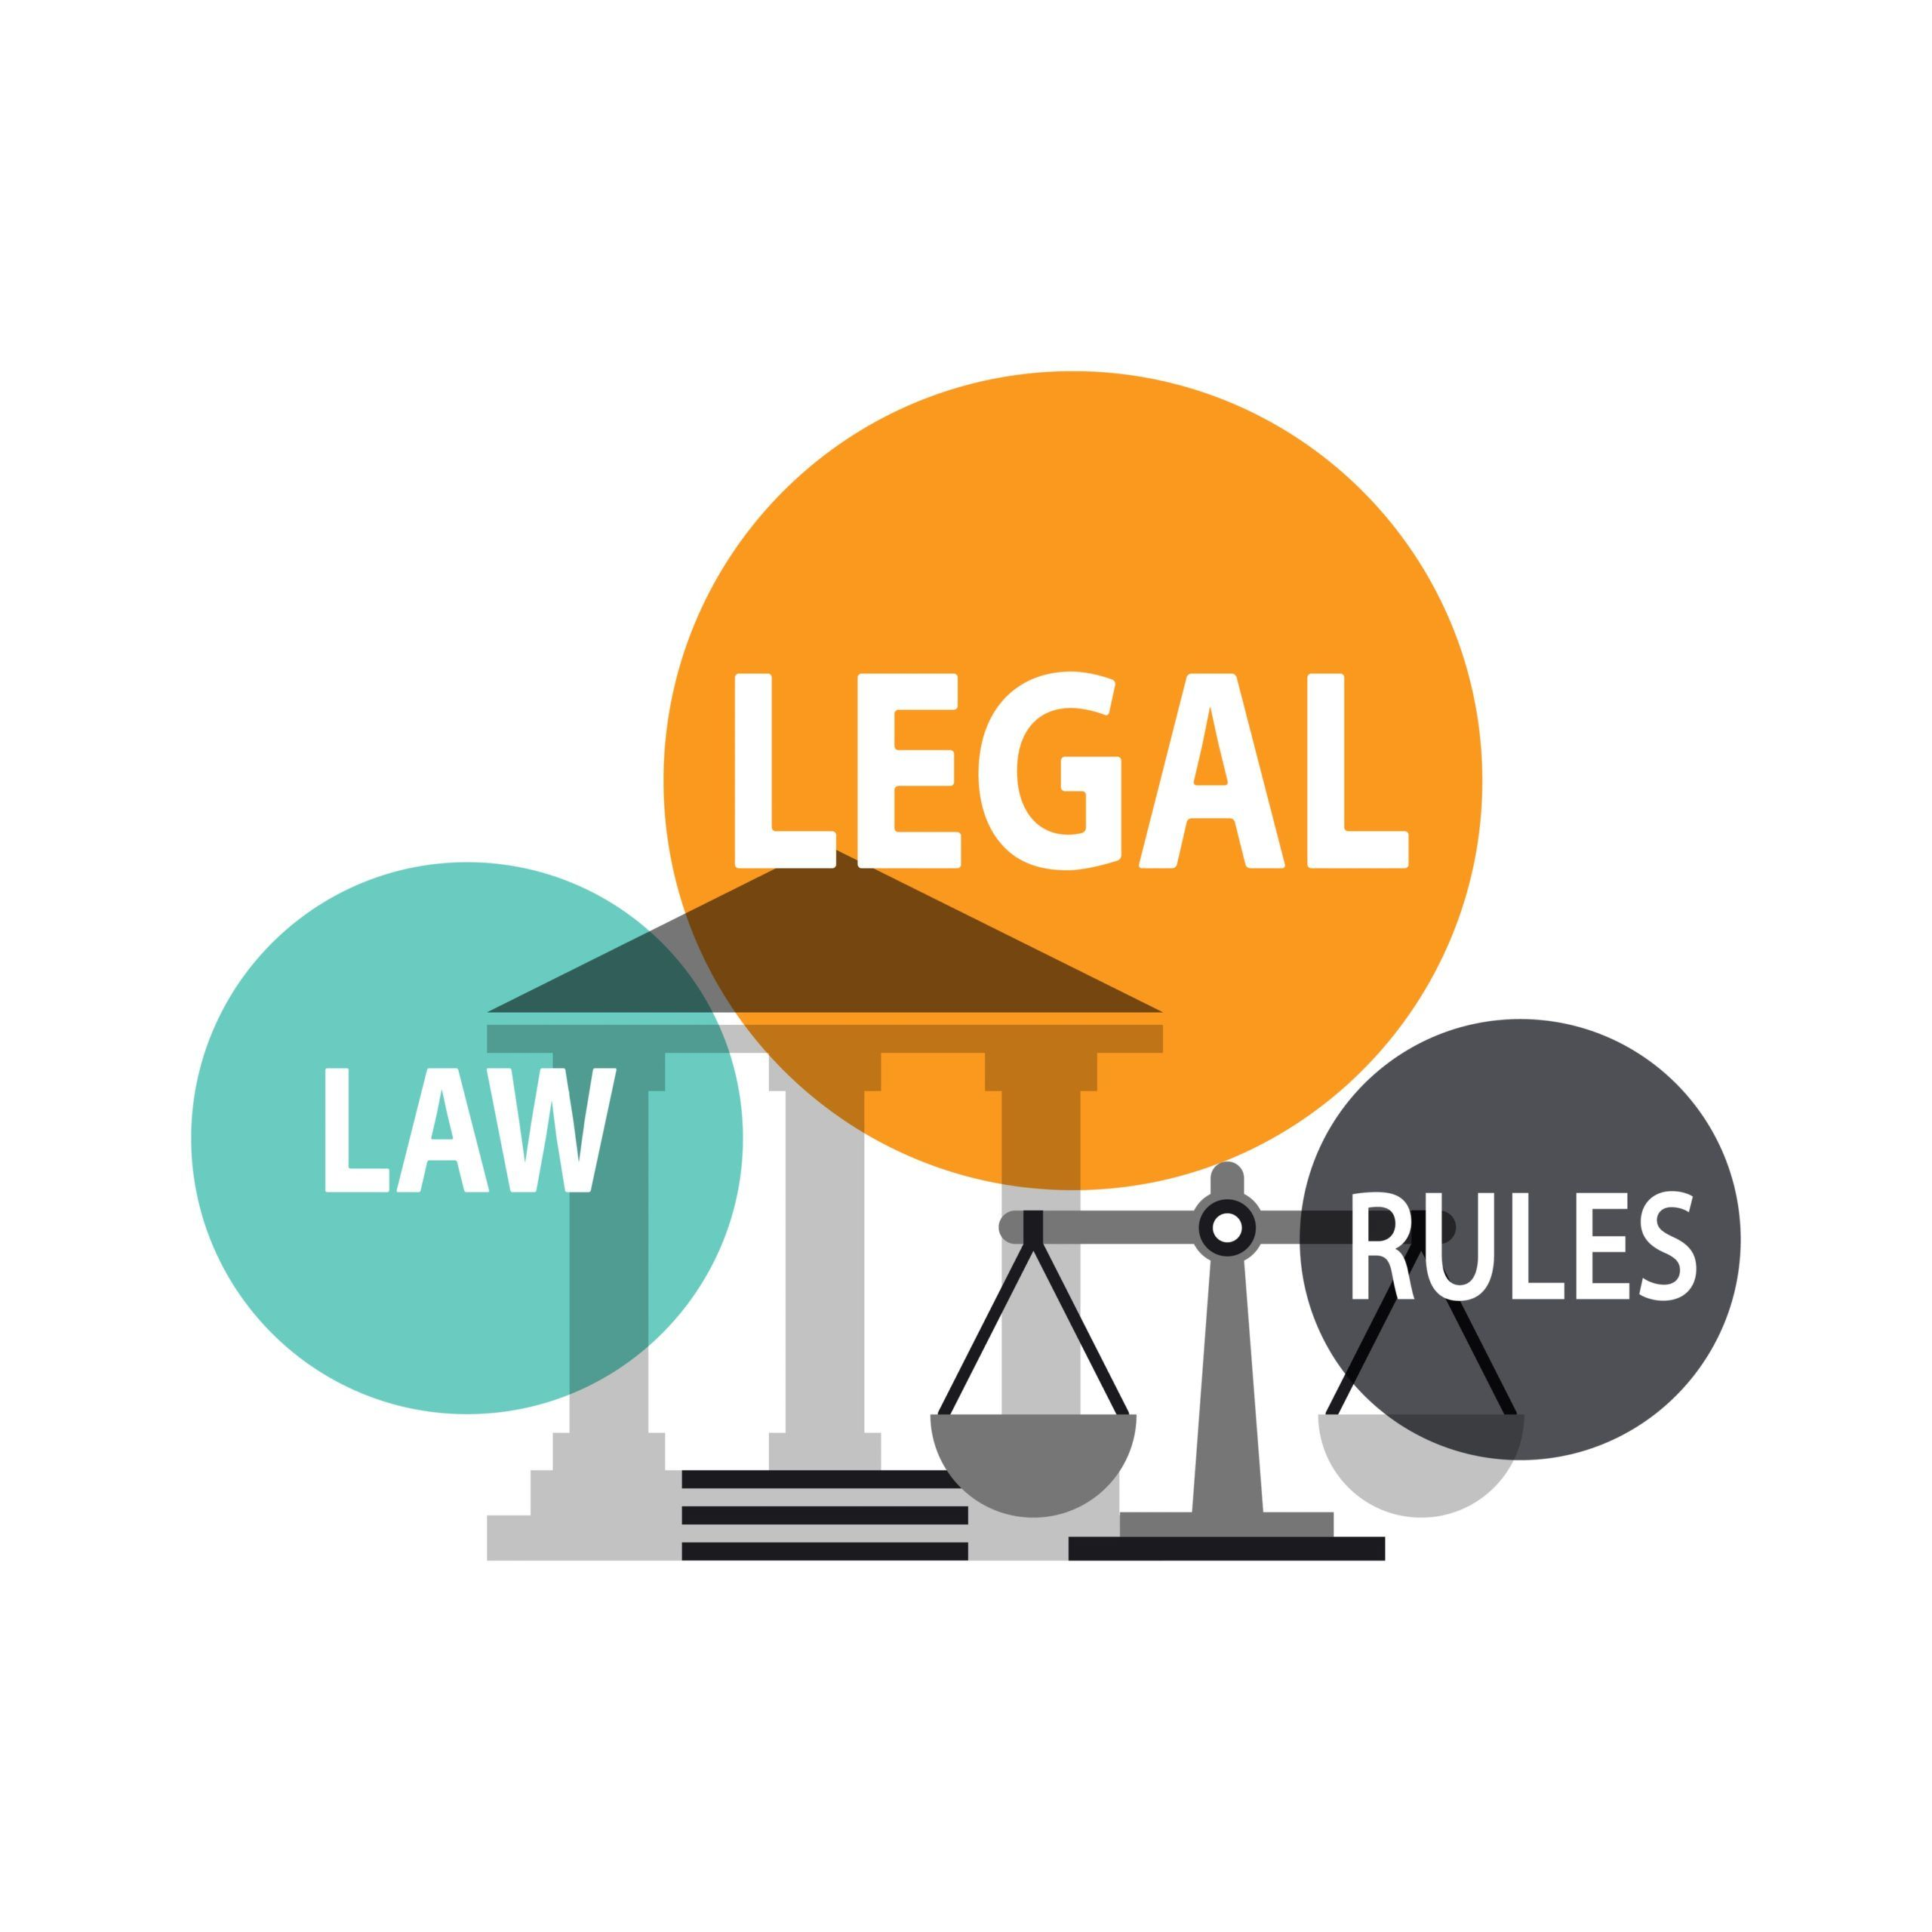 law, legal, and rules text inside circles on an image of a scale